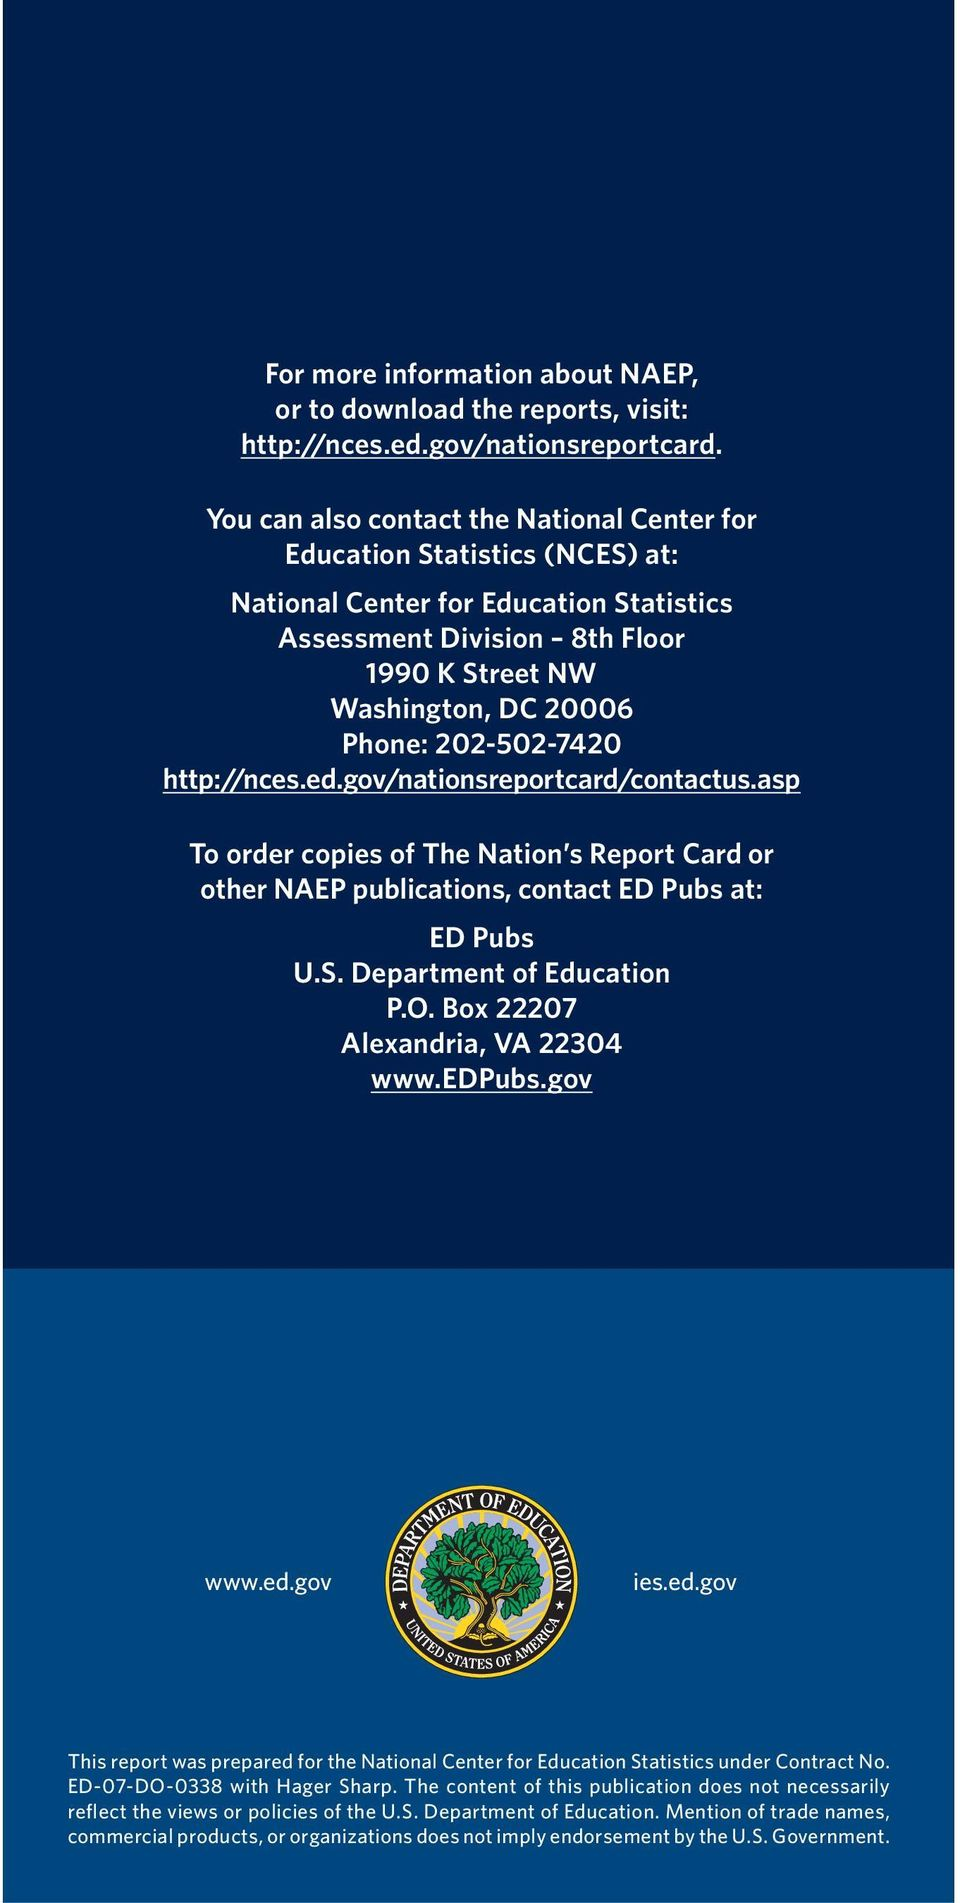 202-502-7420 http://nces.ed.gov/nationsreportcard/contactus.asp To order copies of The Nation s Report Card or other NAEP publications, contact ED Pubs at: ED Pubs U.S. Department of Education P.O.